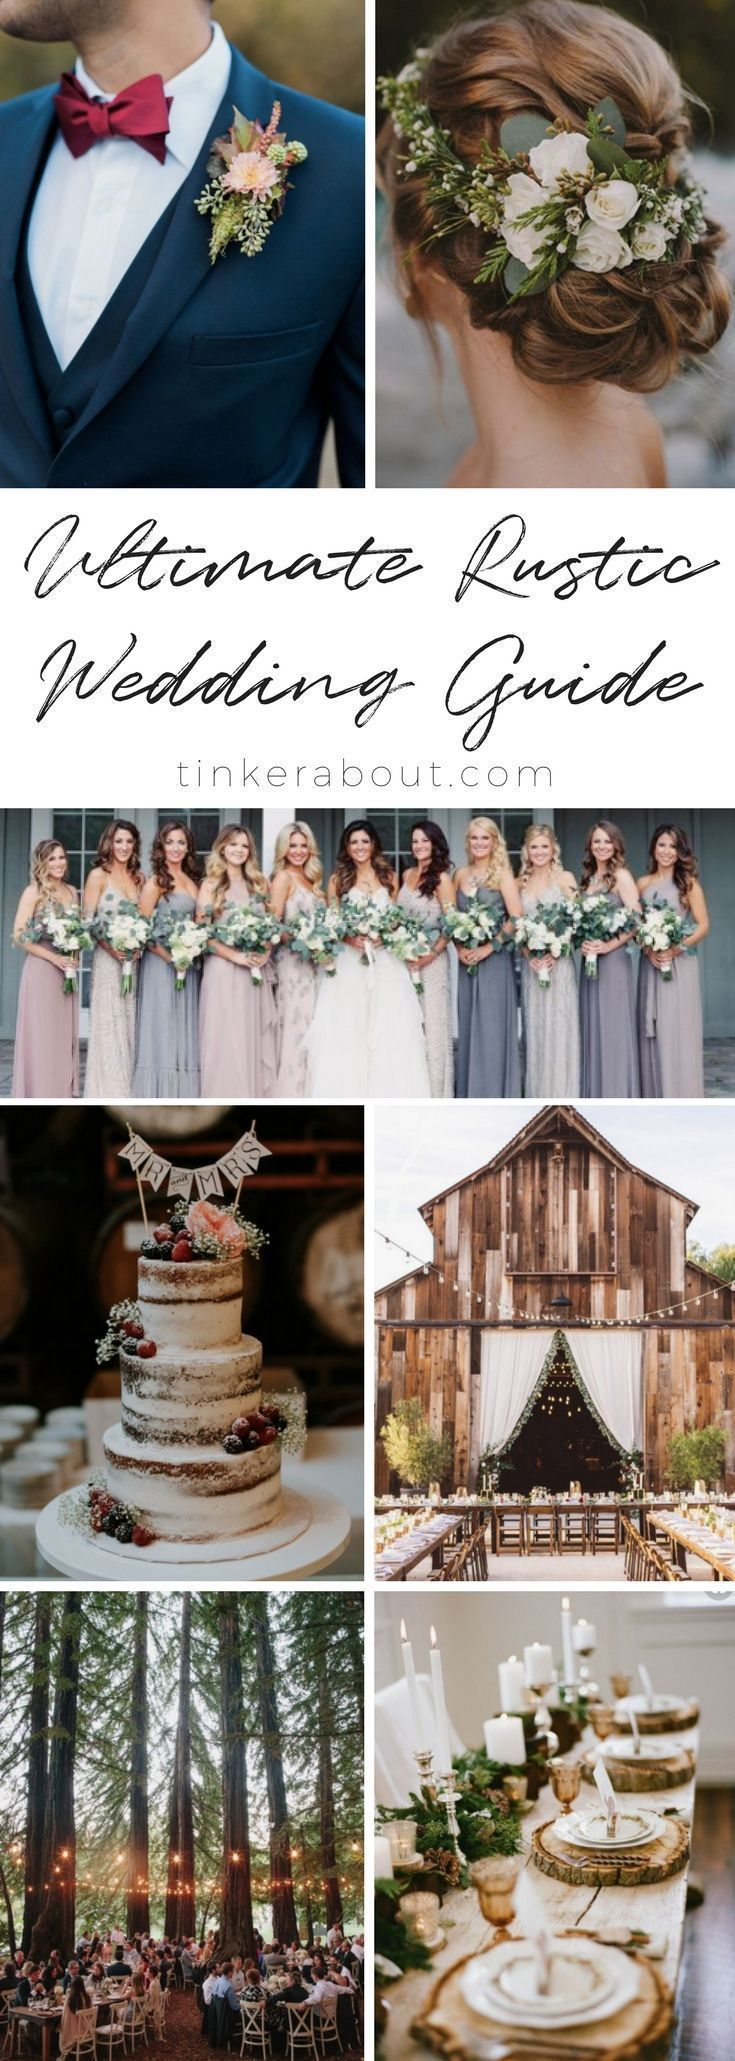 The Ultimate Guide to Your Perfect Rustic Wedding. Find 40+ well-curated Rustic Wedding Ideas on my Blog - tinkerabout.com. From the perfect Rustic Wedding Location to Rustic Wedding Decorations. I also included Rustic Wedding Hairstyles, Rustic Wedding Bridesmaids Dresses, Rustic Wedding Cakes, Rustic Wedding Centerpieces Rustic Wedding Invitations and Rustic Wedding Favors. #weddingdecoration